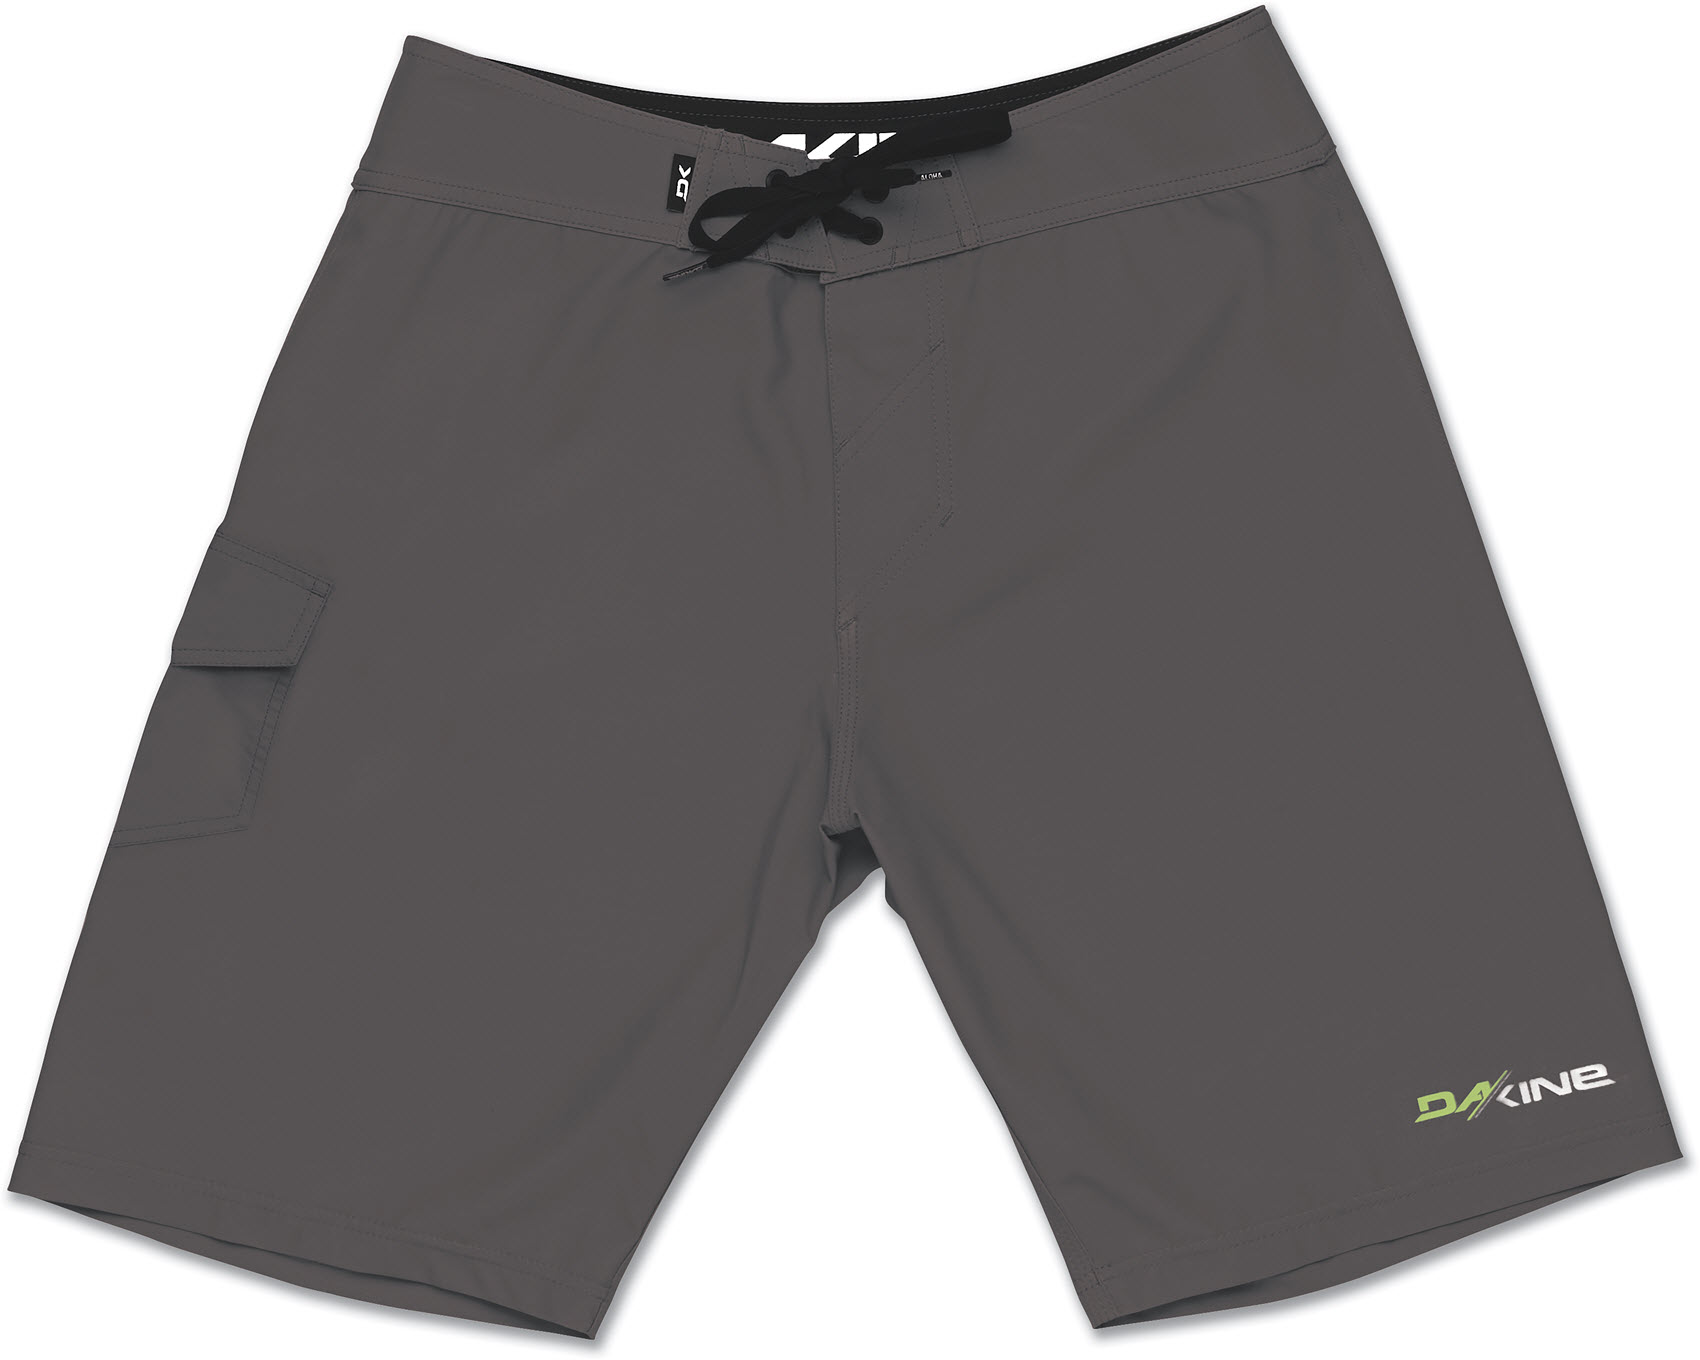 dakine prime board short 2016 in charcoal 30